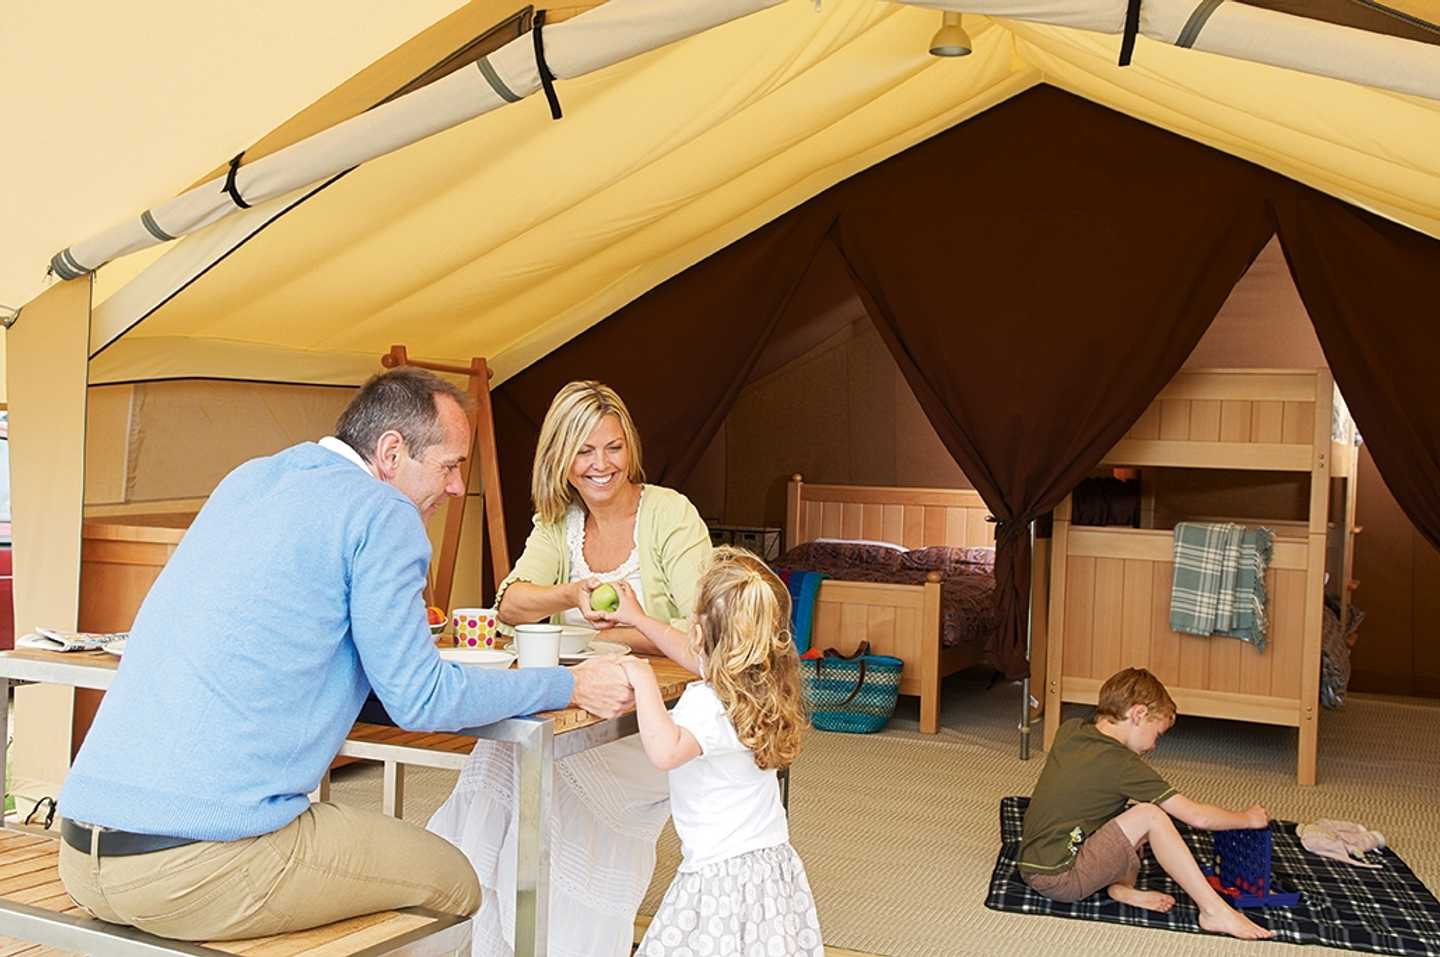 A family eating breakfast and playing in a Safari Tent